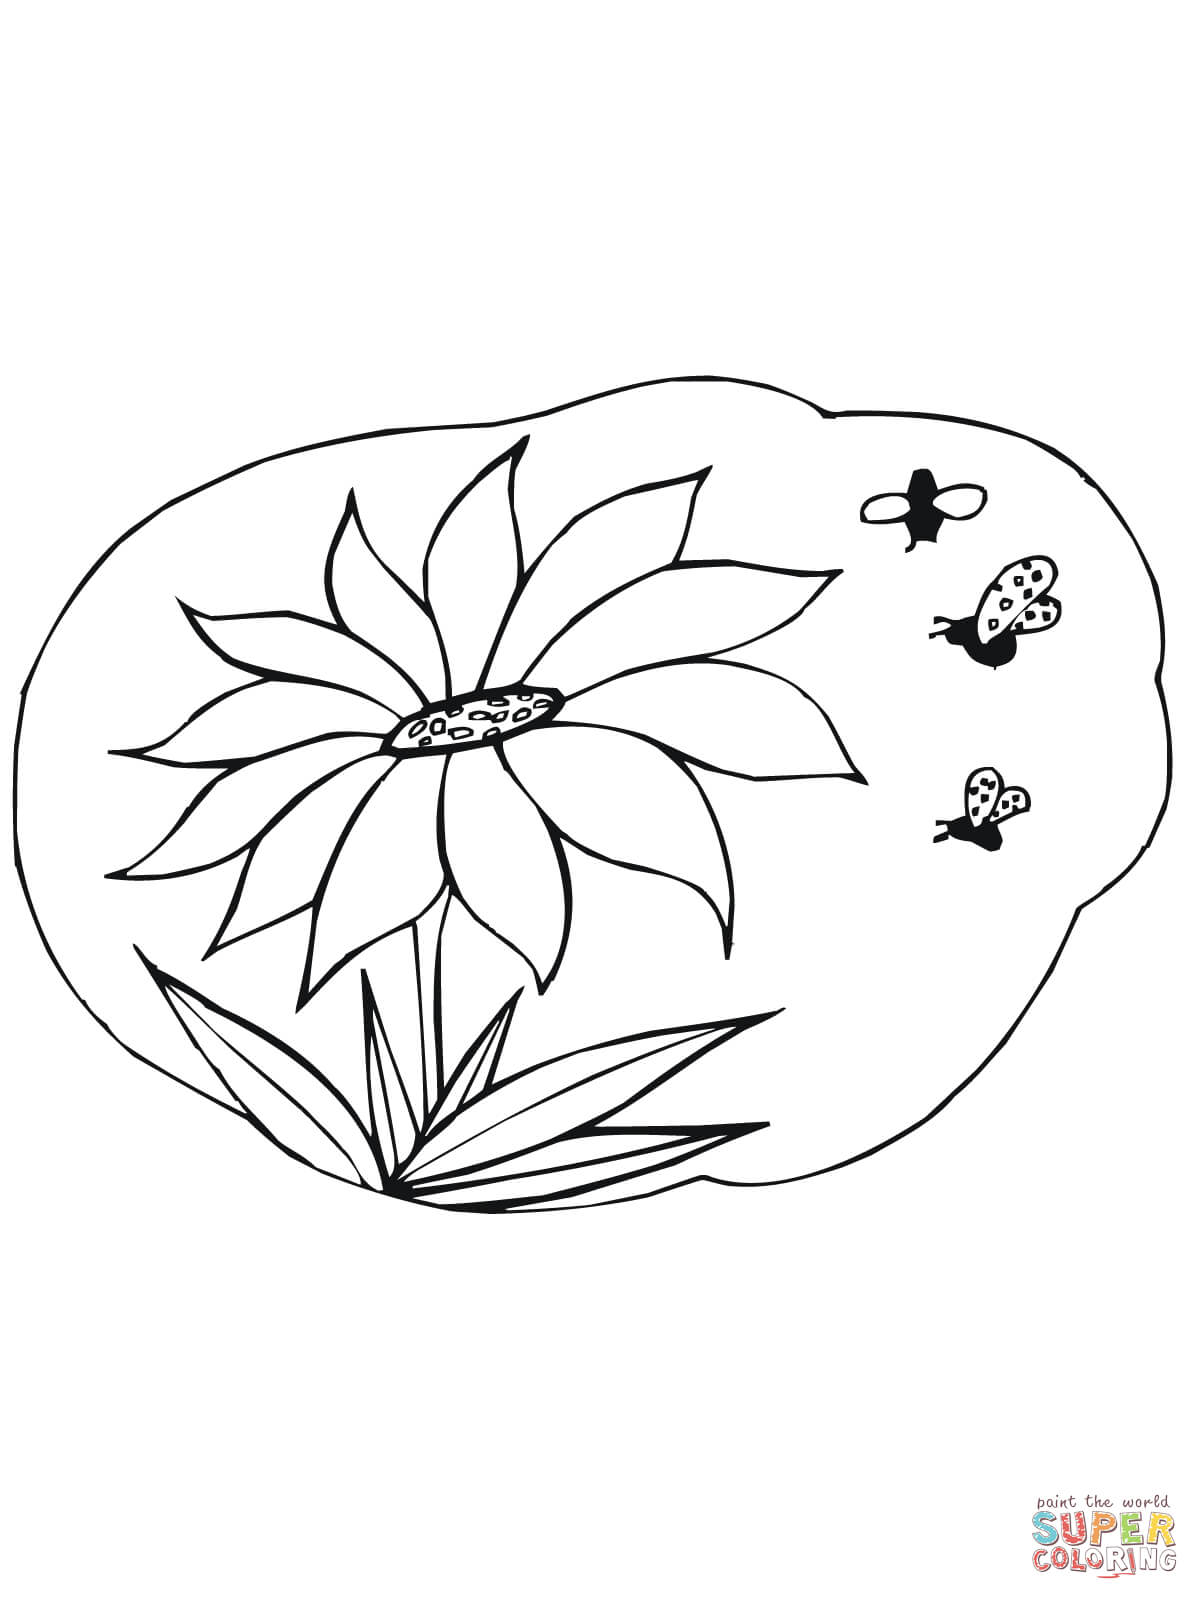 Bees Gather Nectar On Sunflower Coloring Page